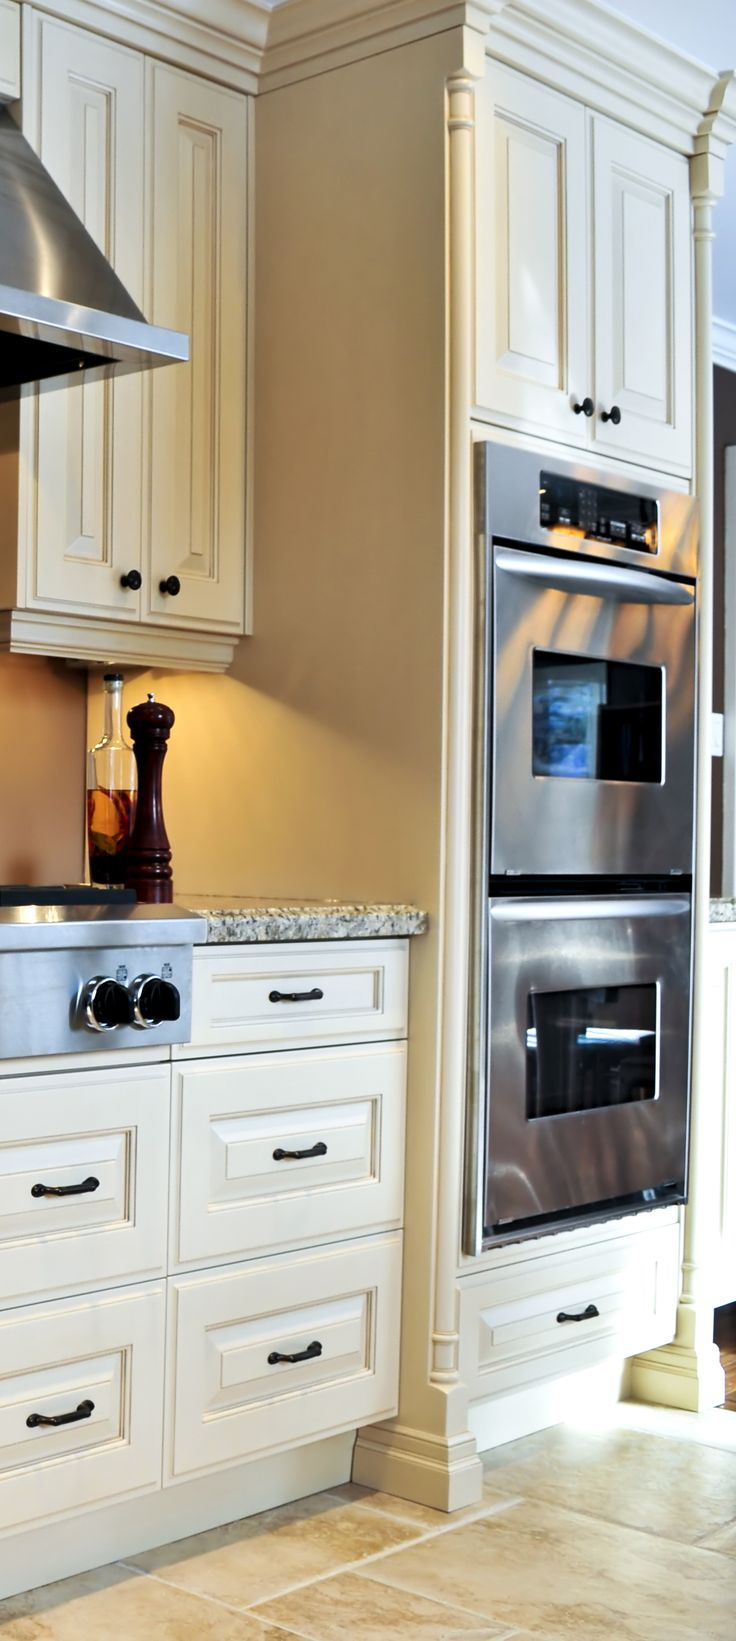 Double Oven Kitchen Design 25 Best Ideas About Gas Double Wall Oven On Pinterest Gas